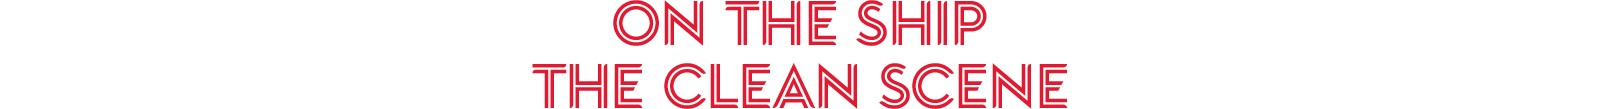 On the ship - the clean scene text